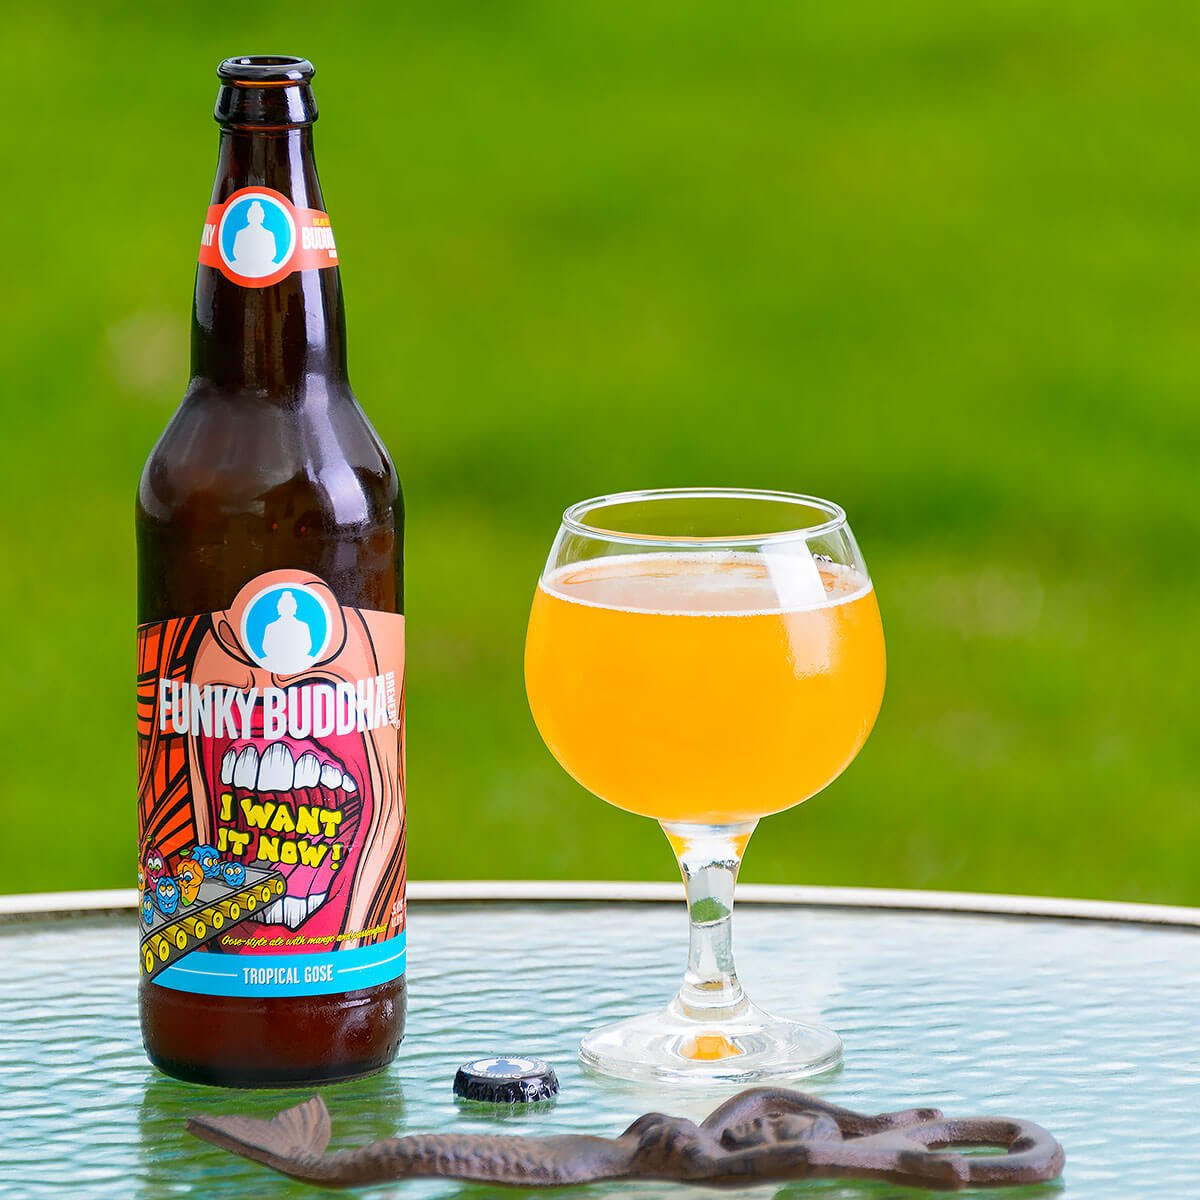 I Want It Now!, a German-style Gose by Funky Buddha Brewery